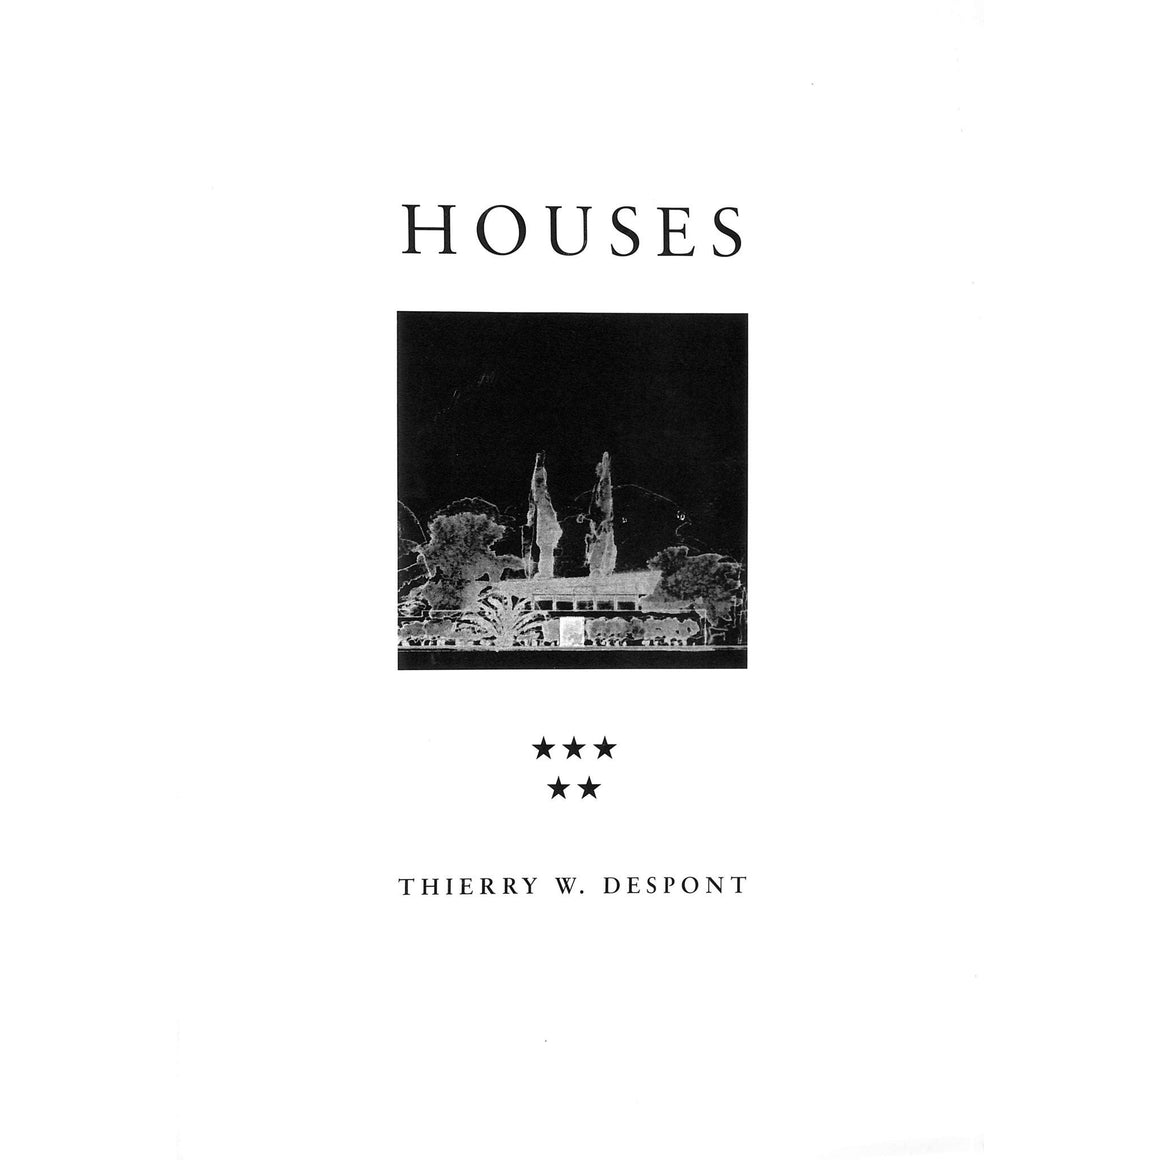 Houses ***** Twenty-Fifth Anniversary